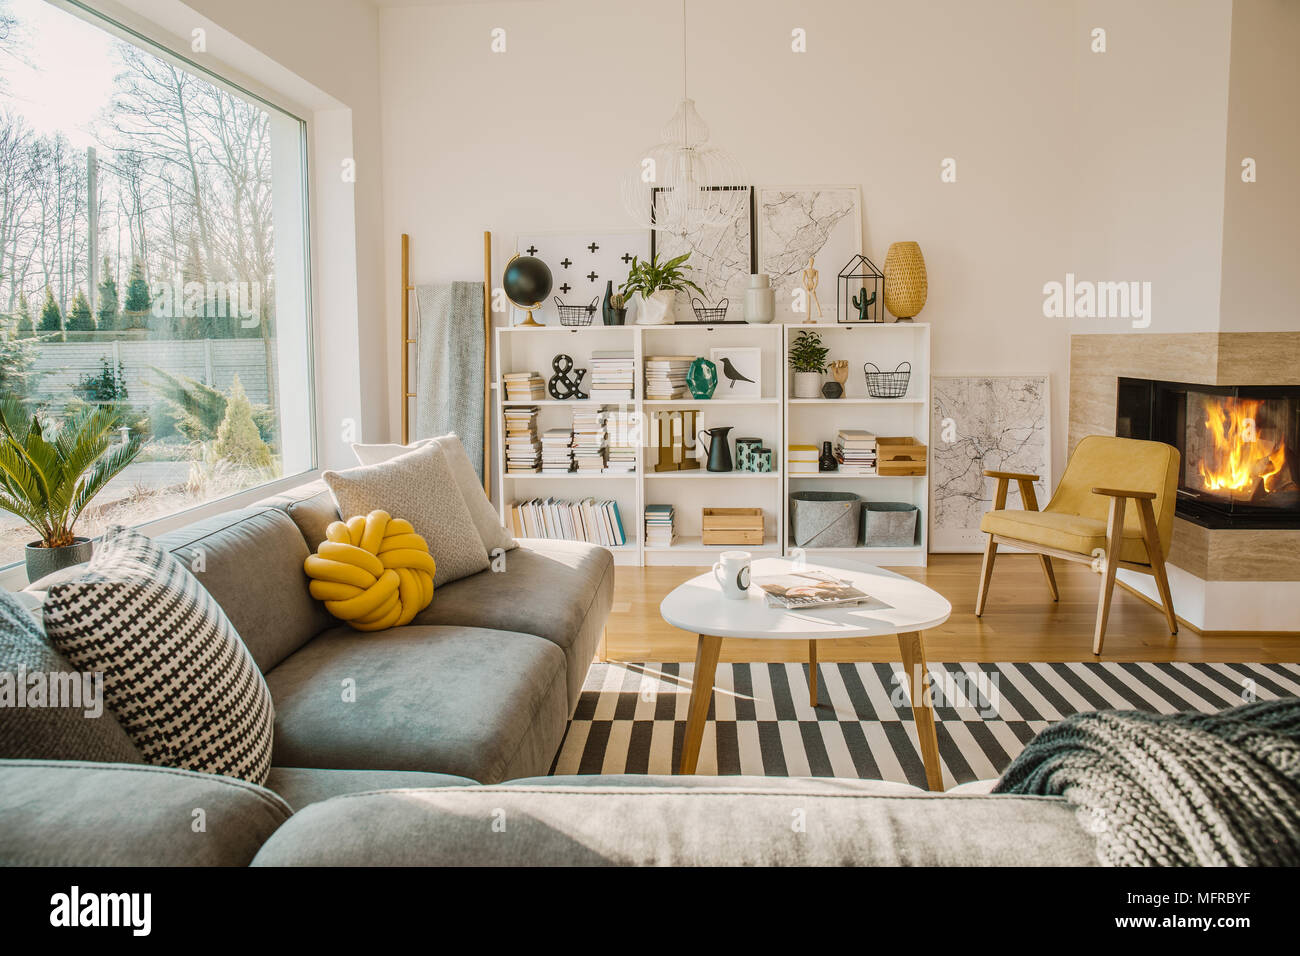 Exceptionnel White Wooden Rack With Books, Decorations, Fresh Plants And Simple Posters  In Bright Scandinavian Living Room Interior With Fireplace, Coffee Table An